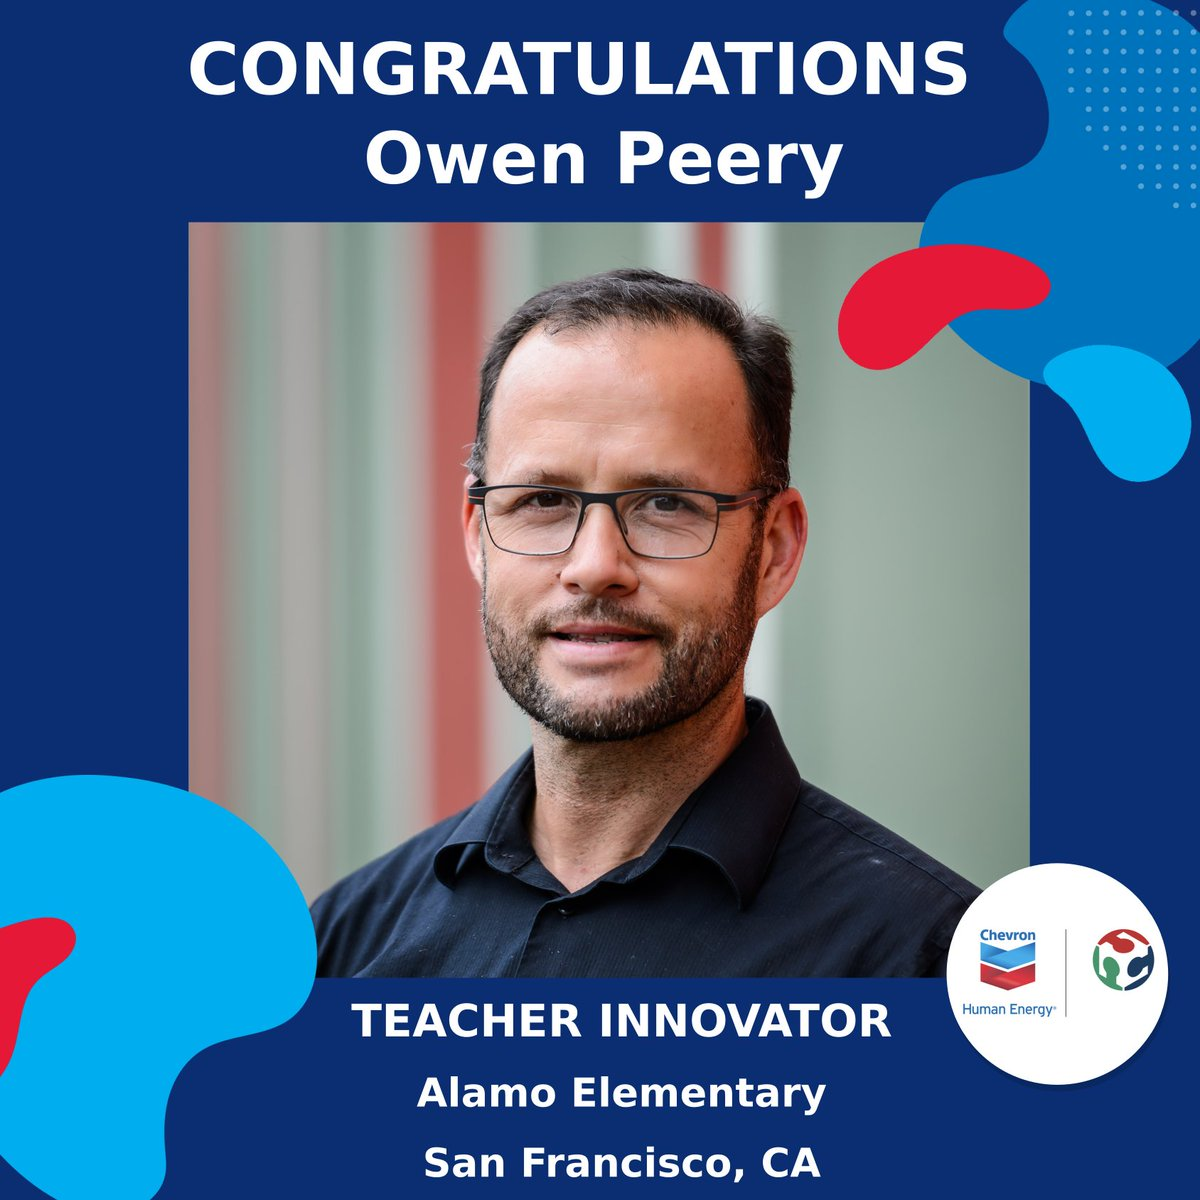 Drum roll please!! Along with our partners @Chevron, we announce the Round 2 winner of the #2020TeacherInnovatorAward, @owenpeery of the @SFUnified School District! Mr. Peery takes donated computers, refurbishes them and delivers them to his students. #SCOPESdf #AllinForTeachers